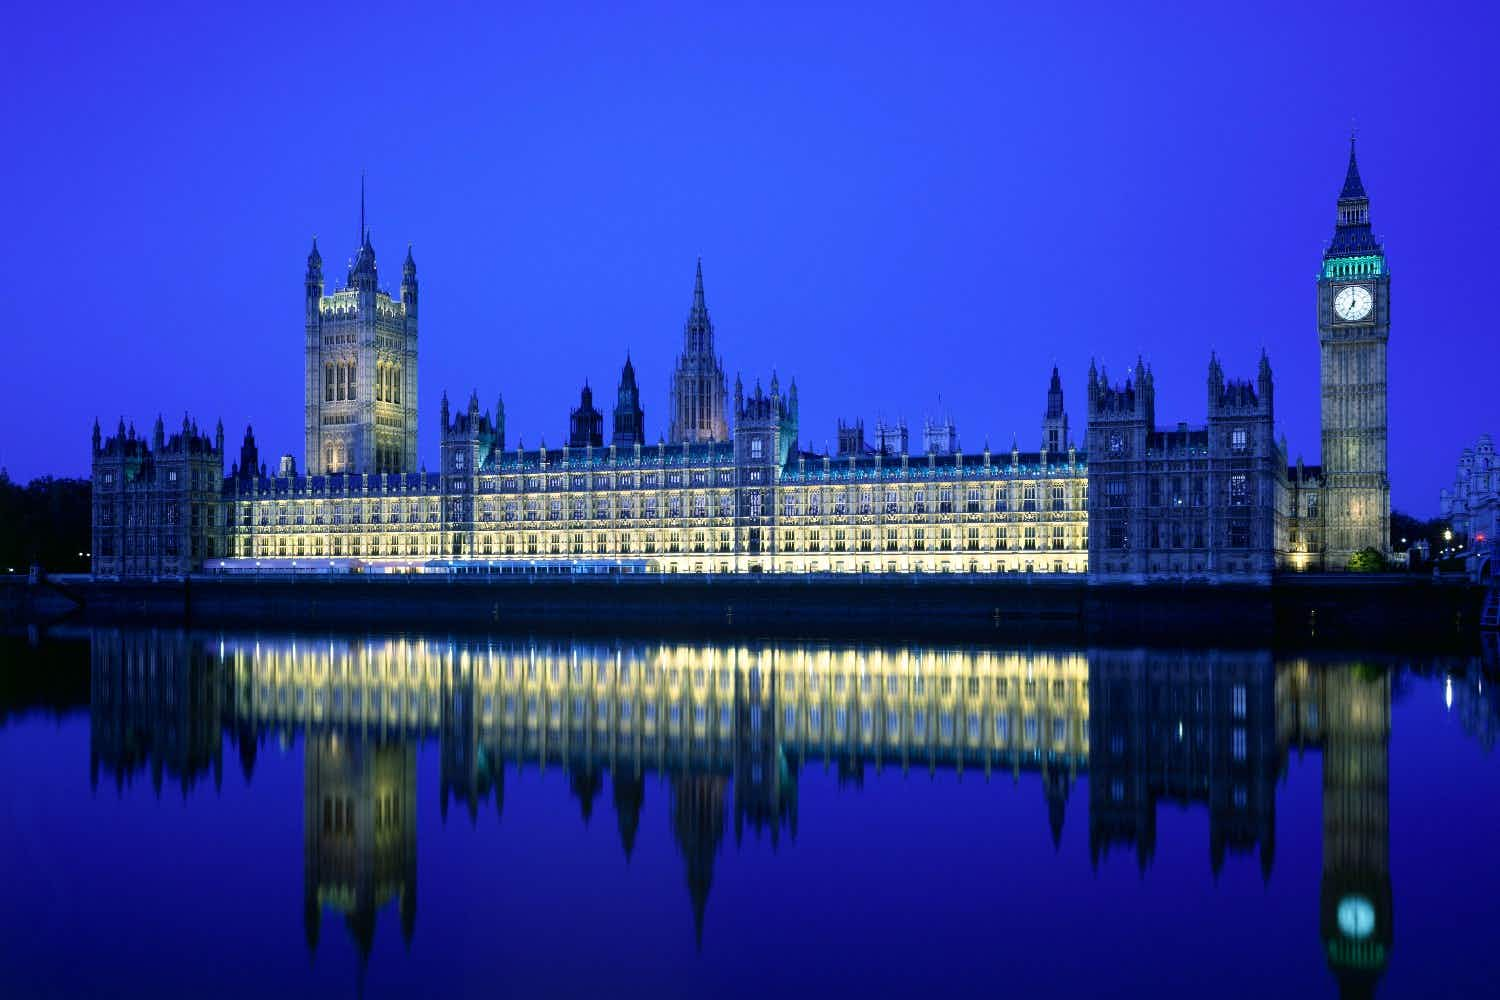 Impress your date with a Valentine's dinner in the Houses of Parliament